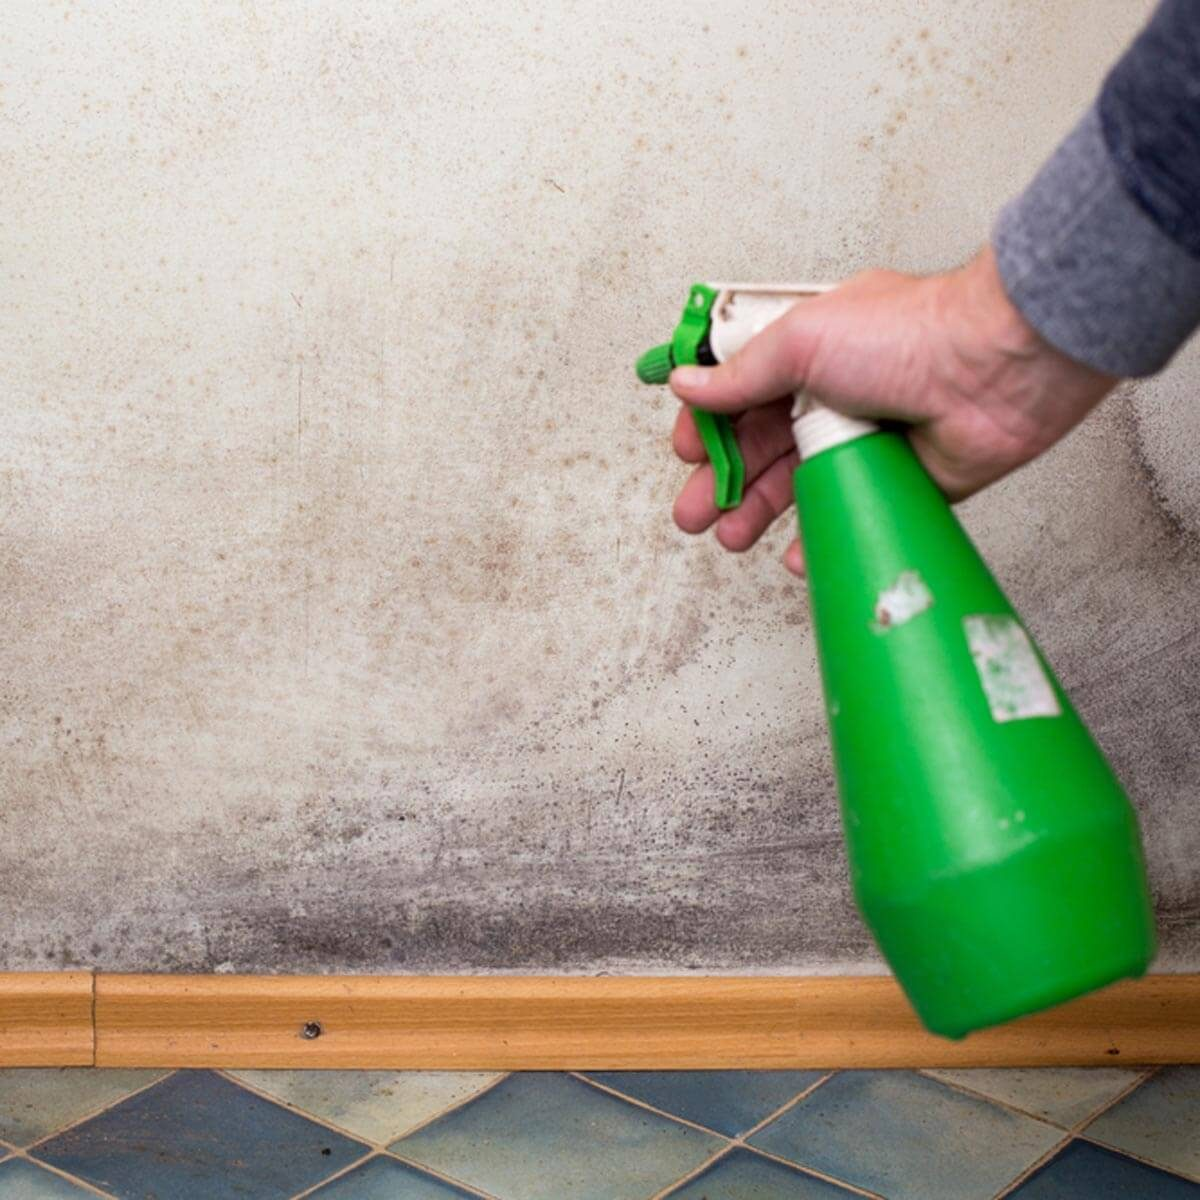 Get rid of Mold and Mildew